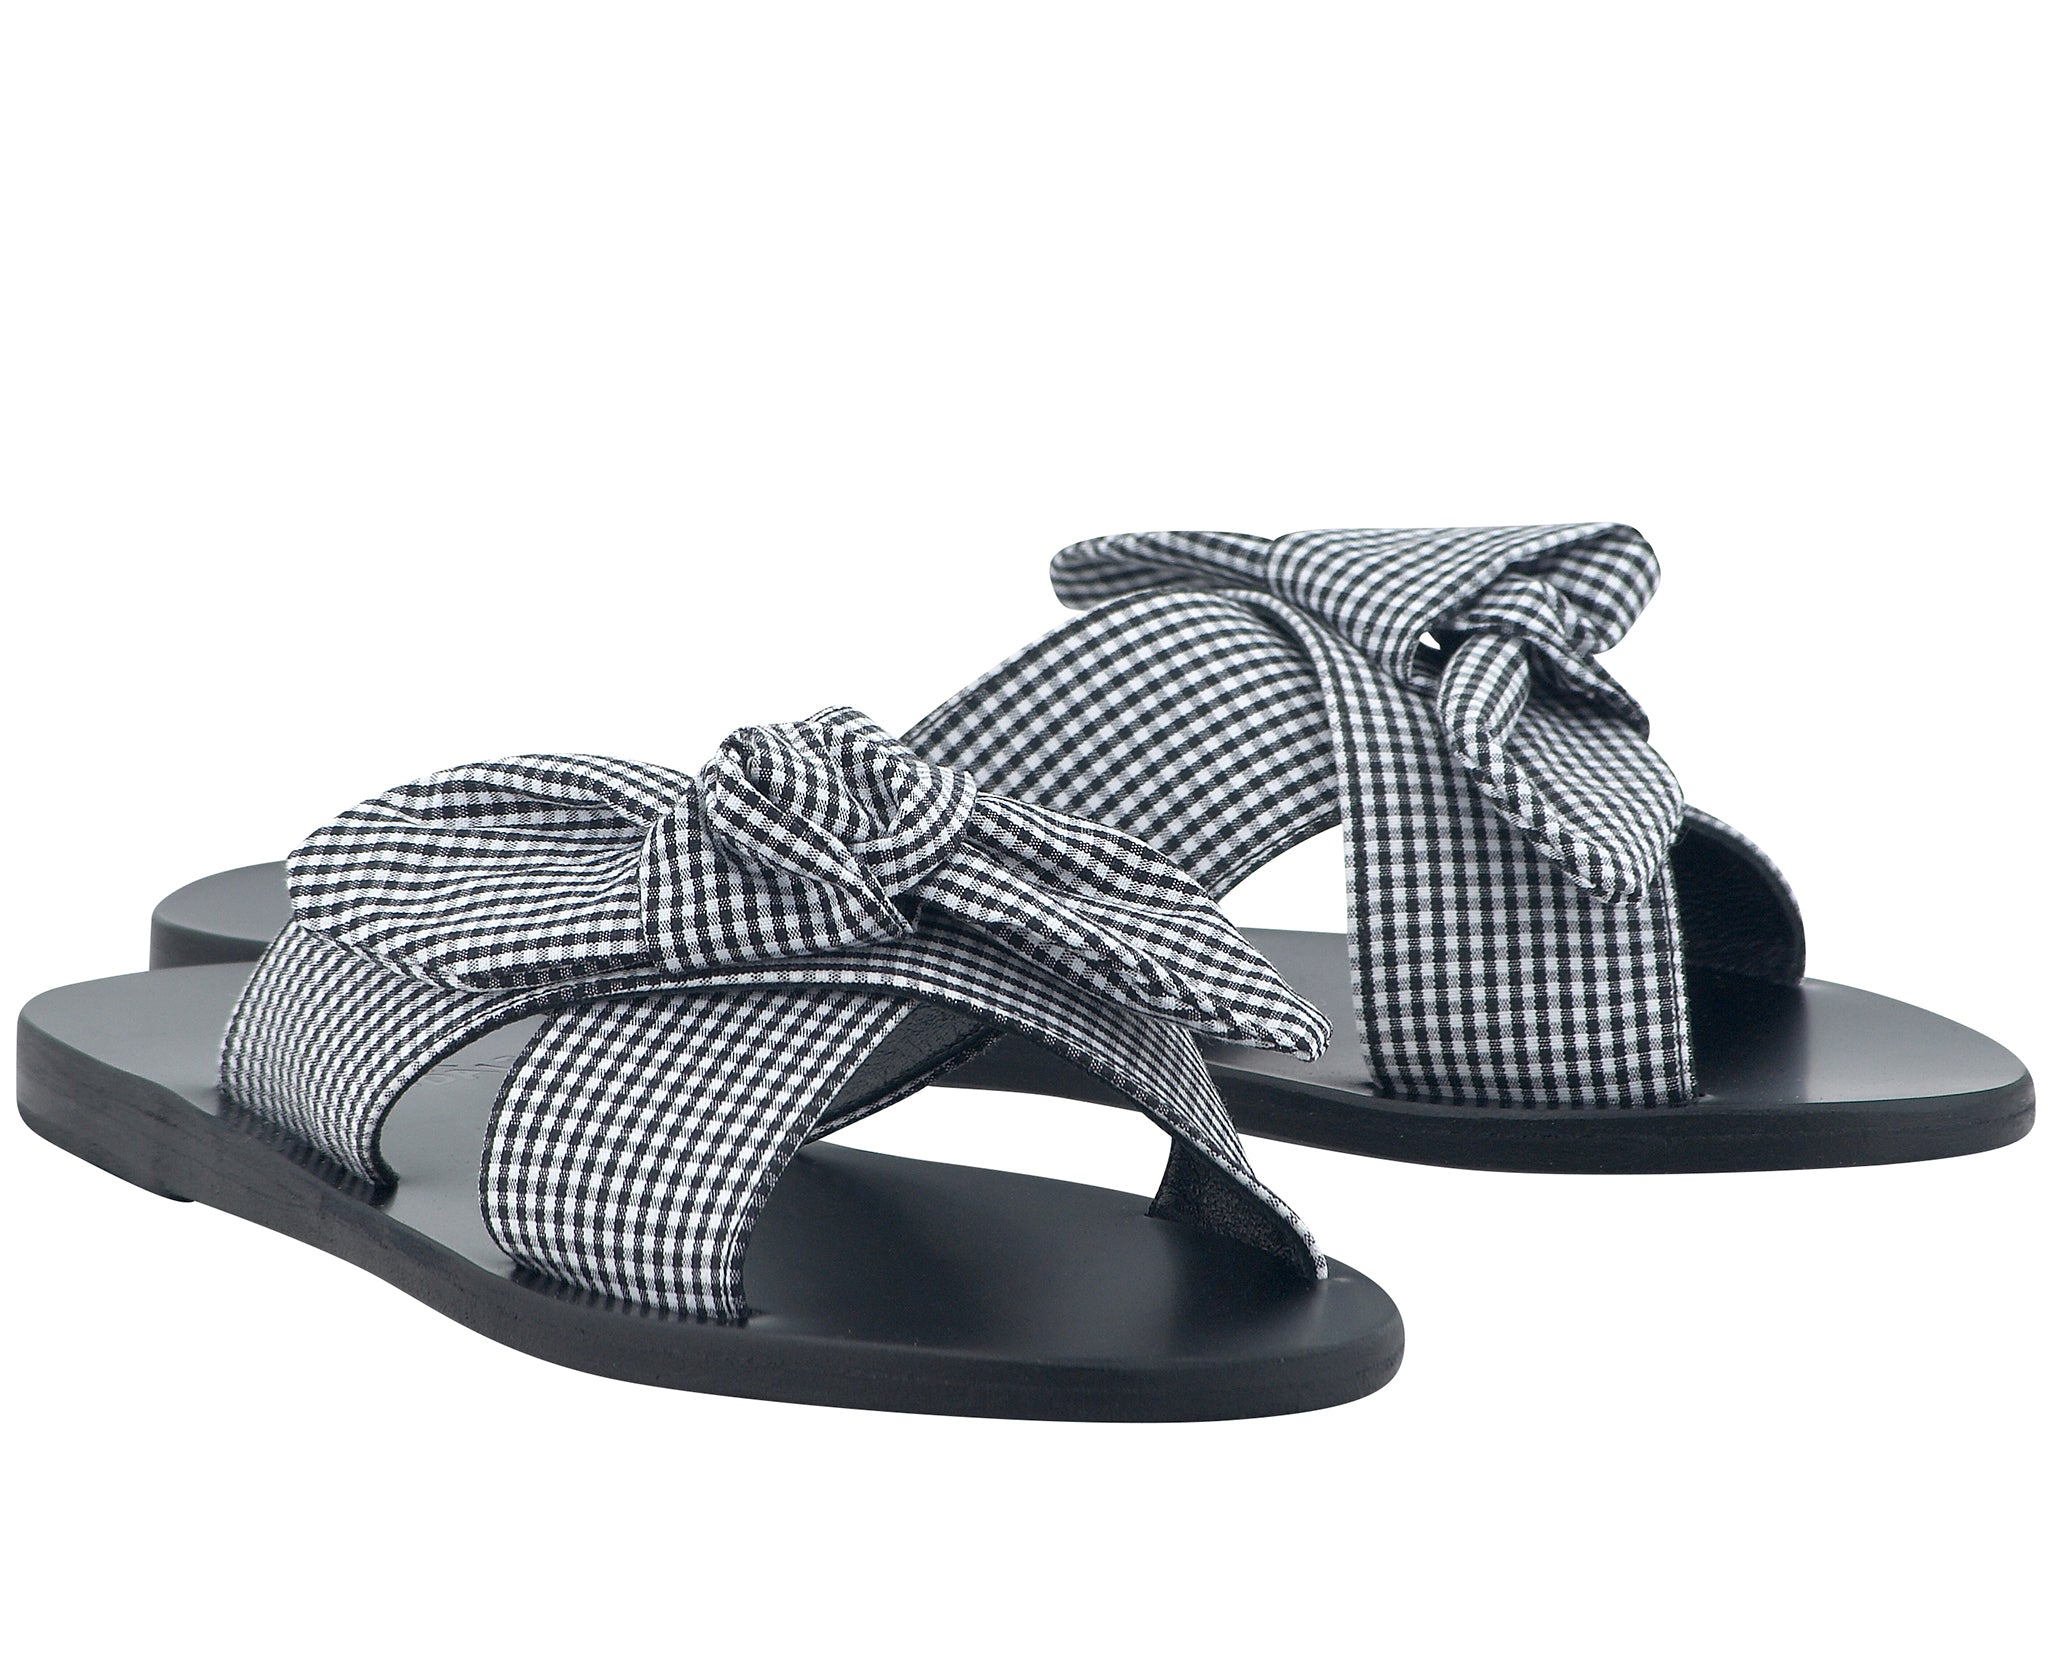 Thais Bow Black Gingham